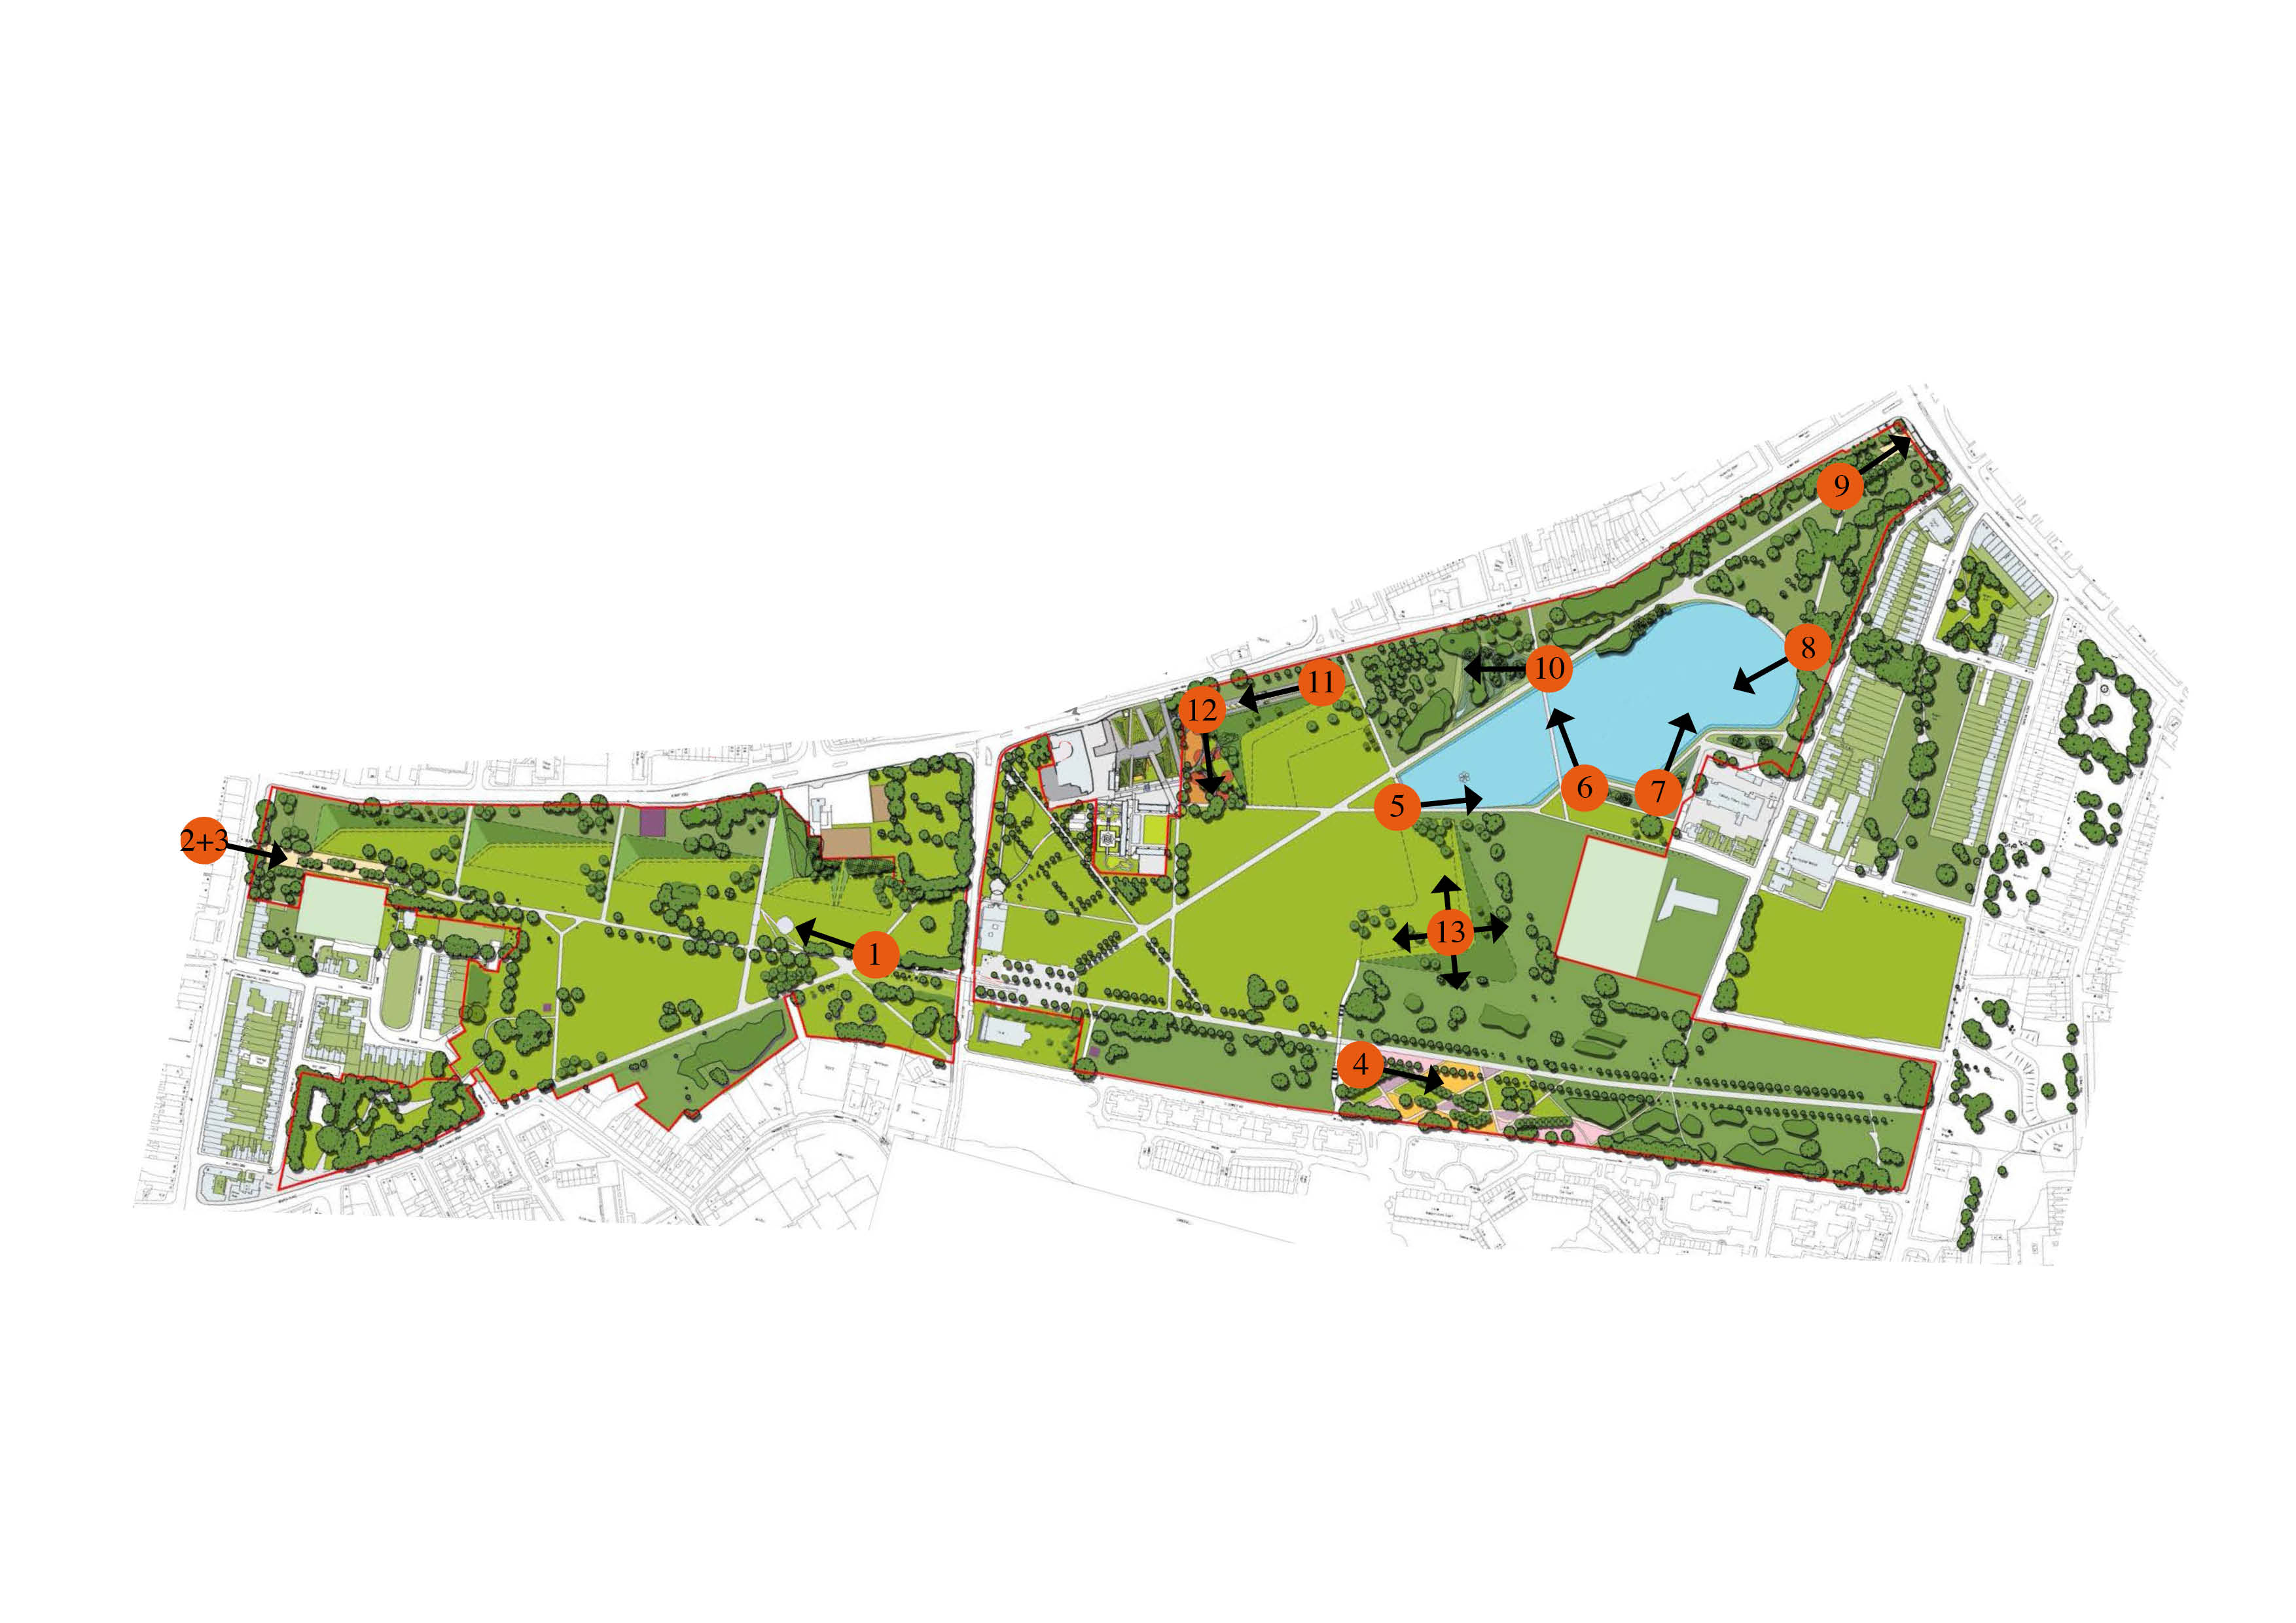 burgess park | landscape architect's pages | page 2